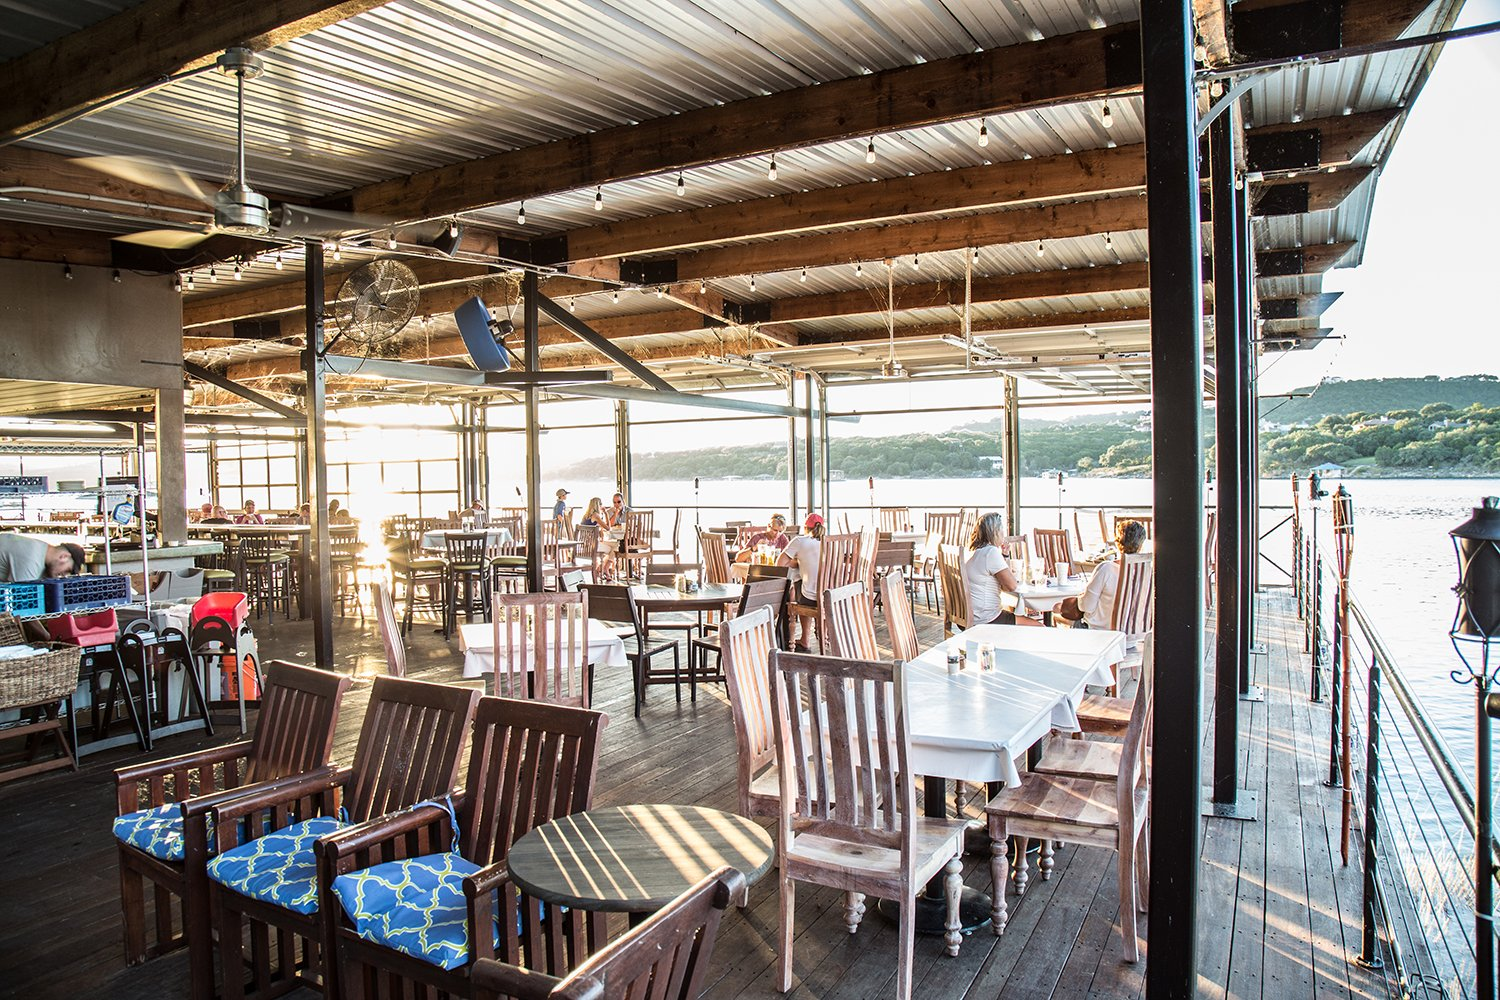 Shack 512, located adjacent to Sandy Creek Marina, on the shore of scenic Lake Travis.